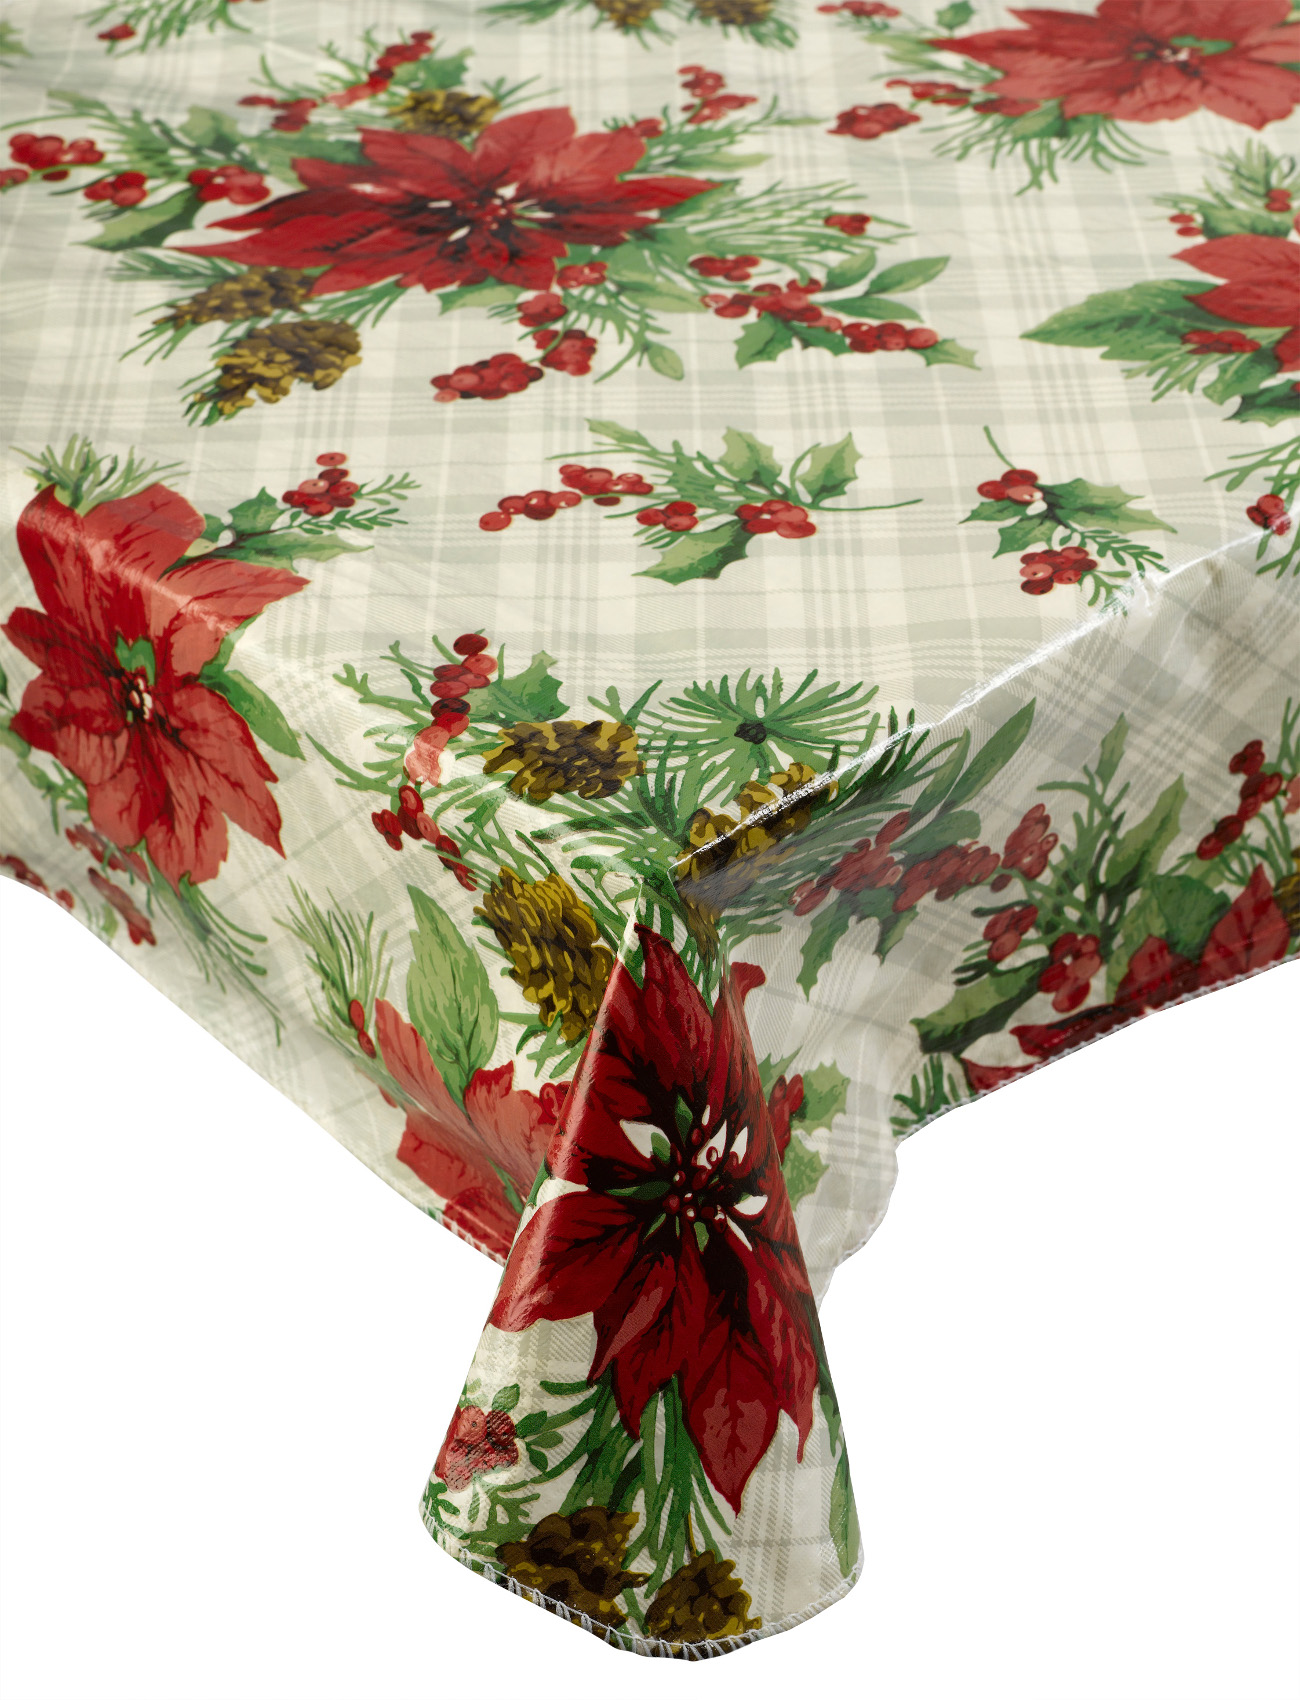 Christmas Tablecloths Australia Details About Check Poinsettia Christmas Pvc Tablecloth Xmas Flannelback Table Linen 52